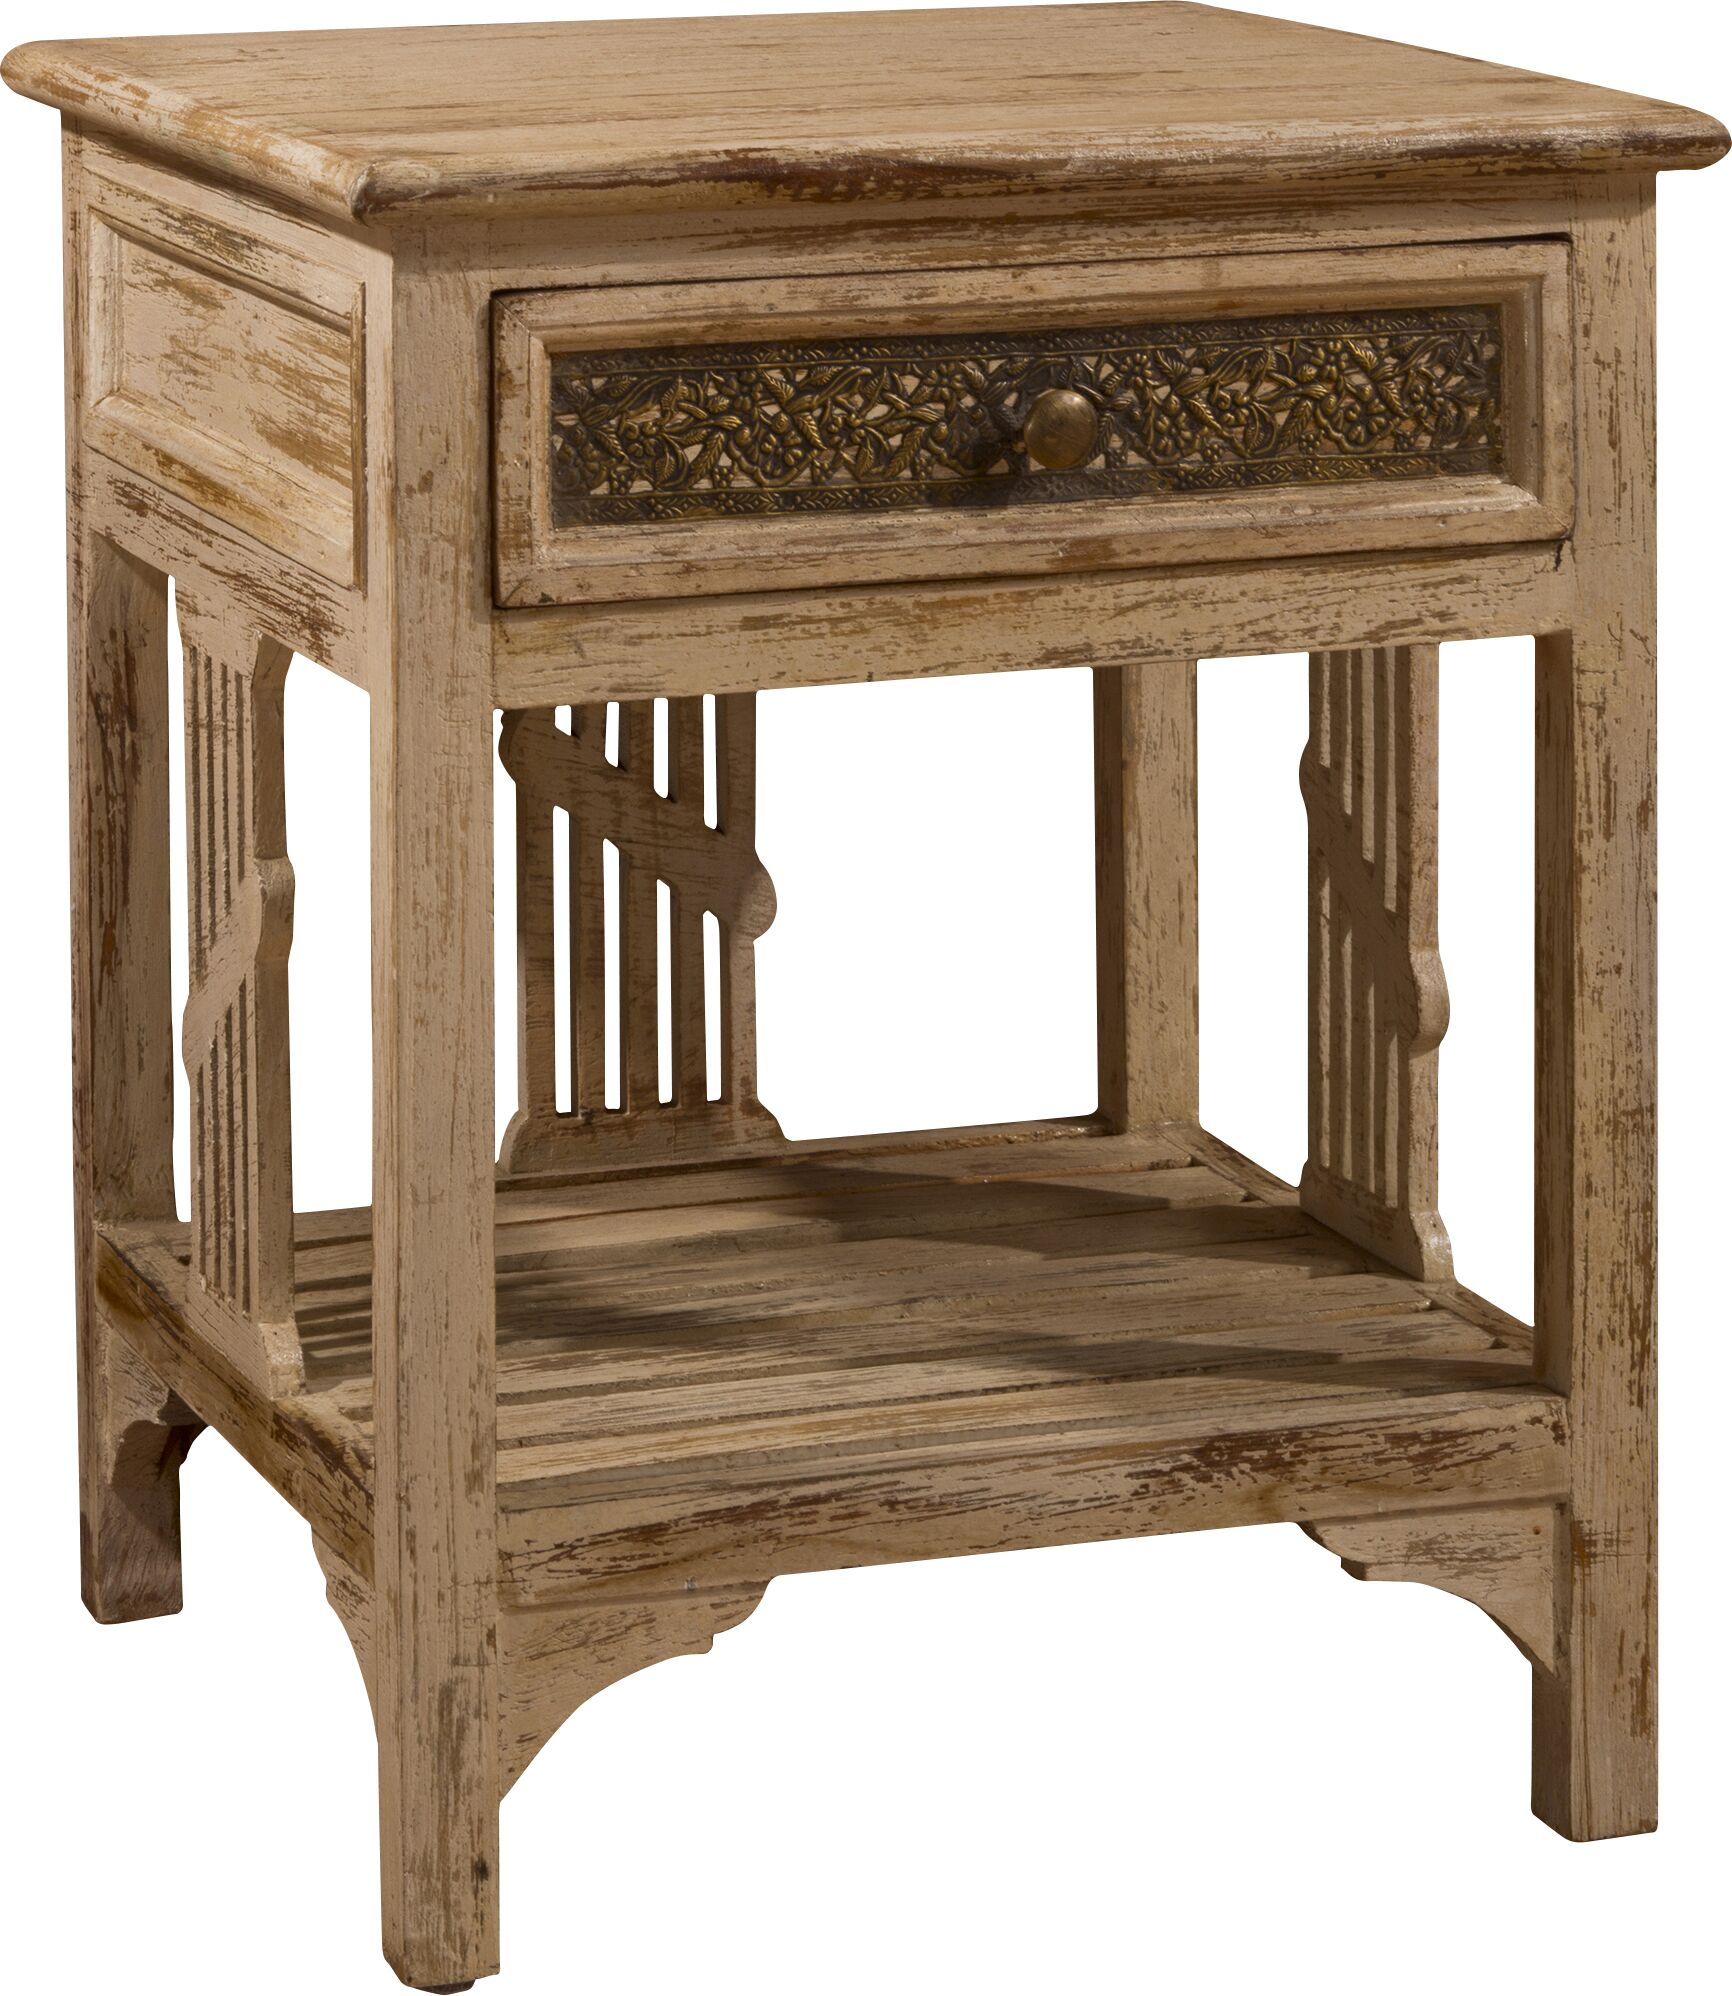 Mowbray End Table